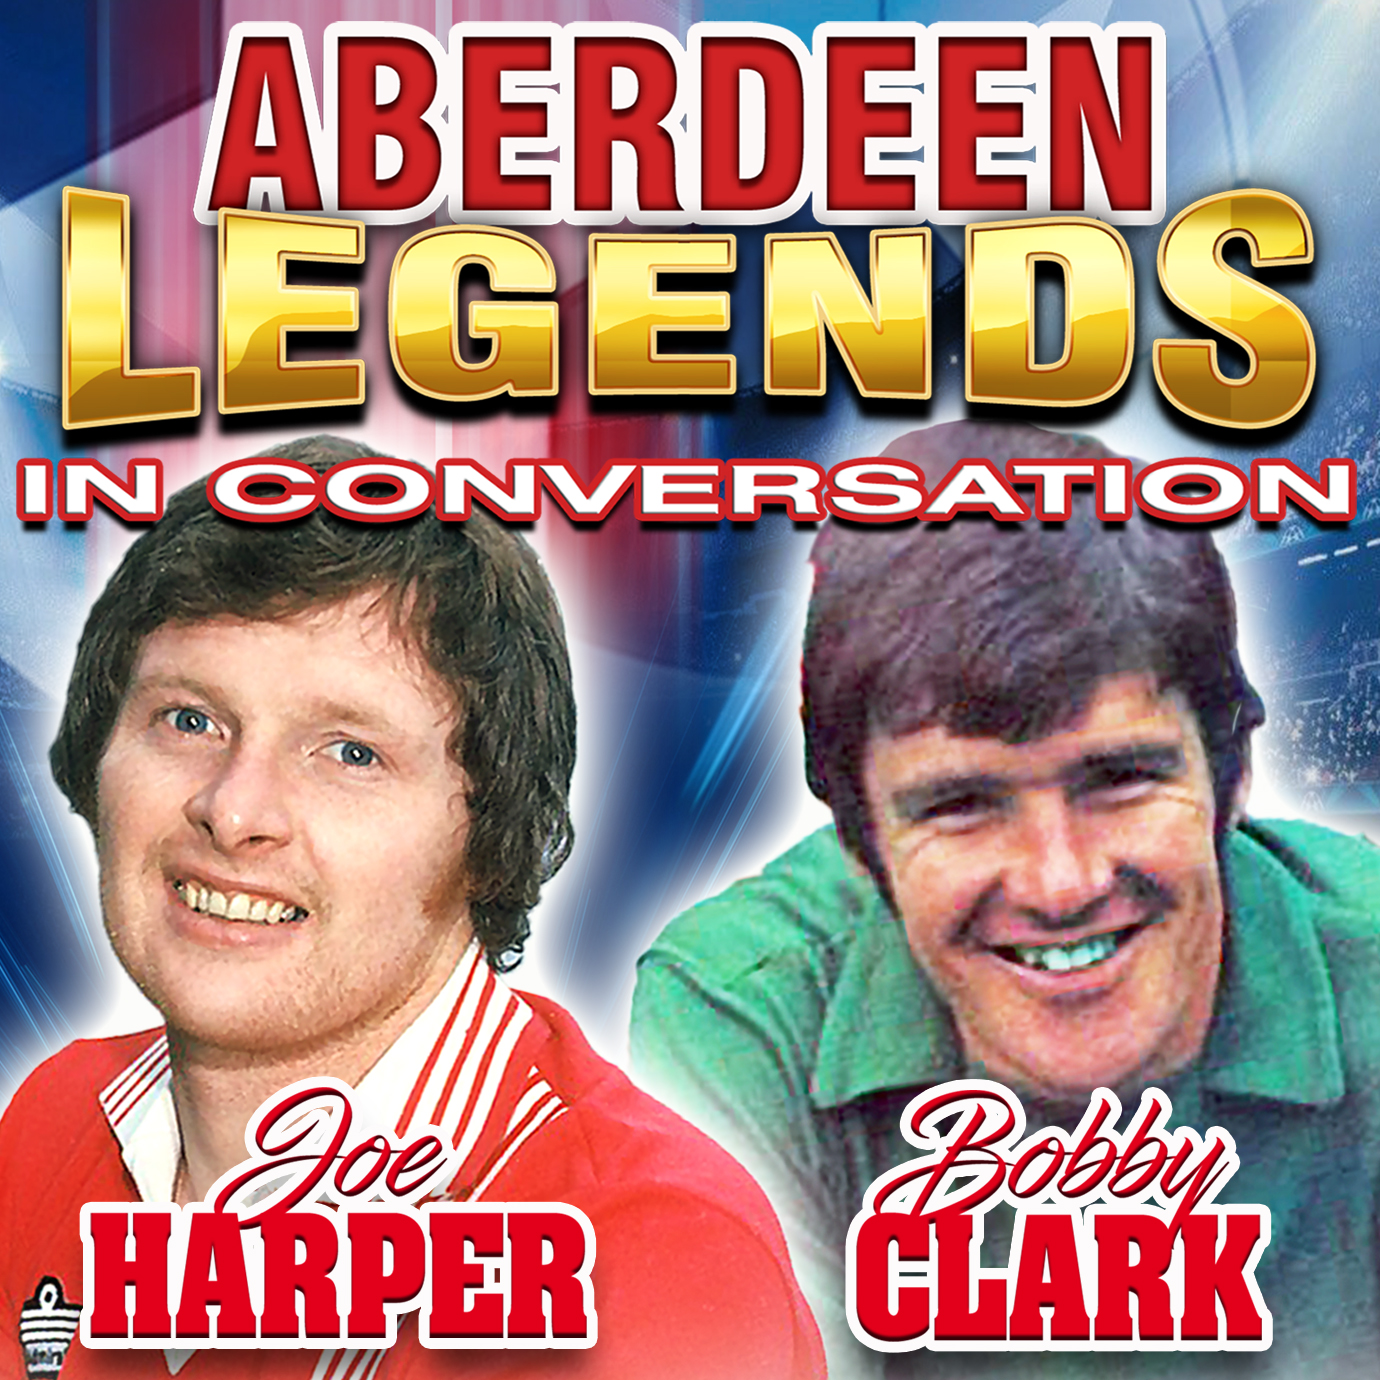 Aberdeen Legends